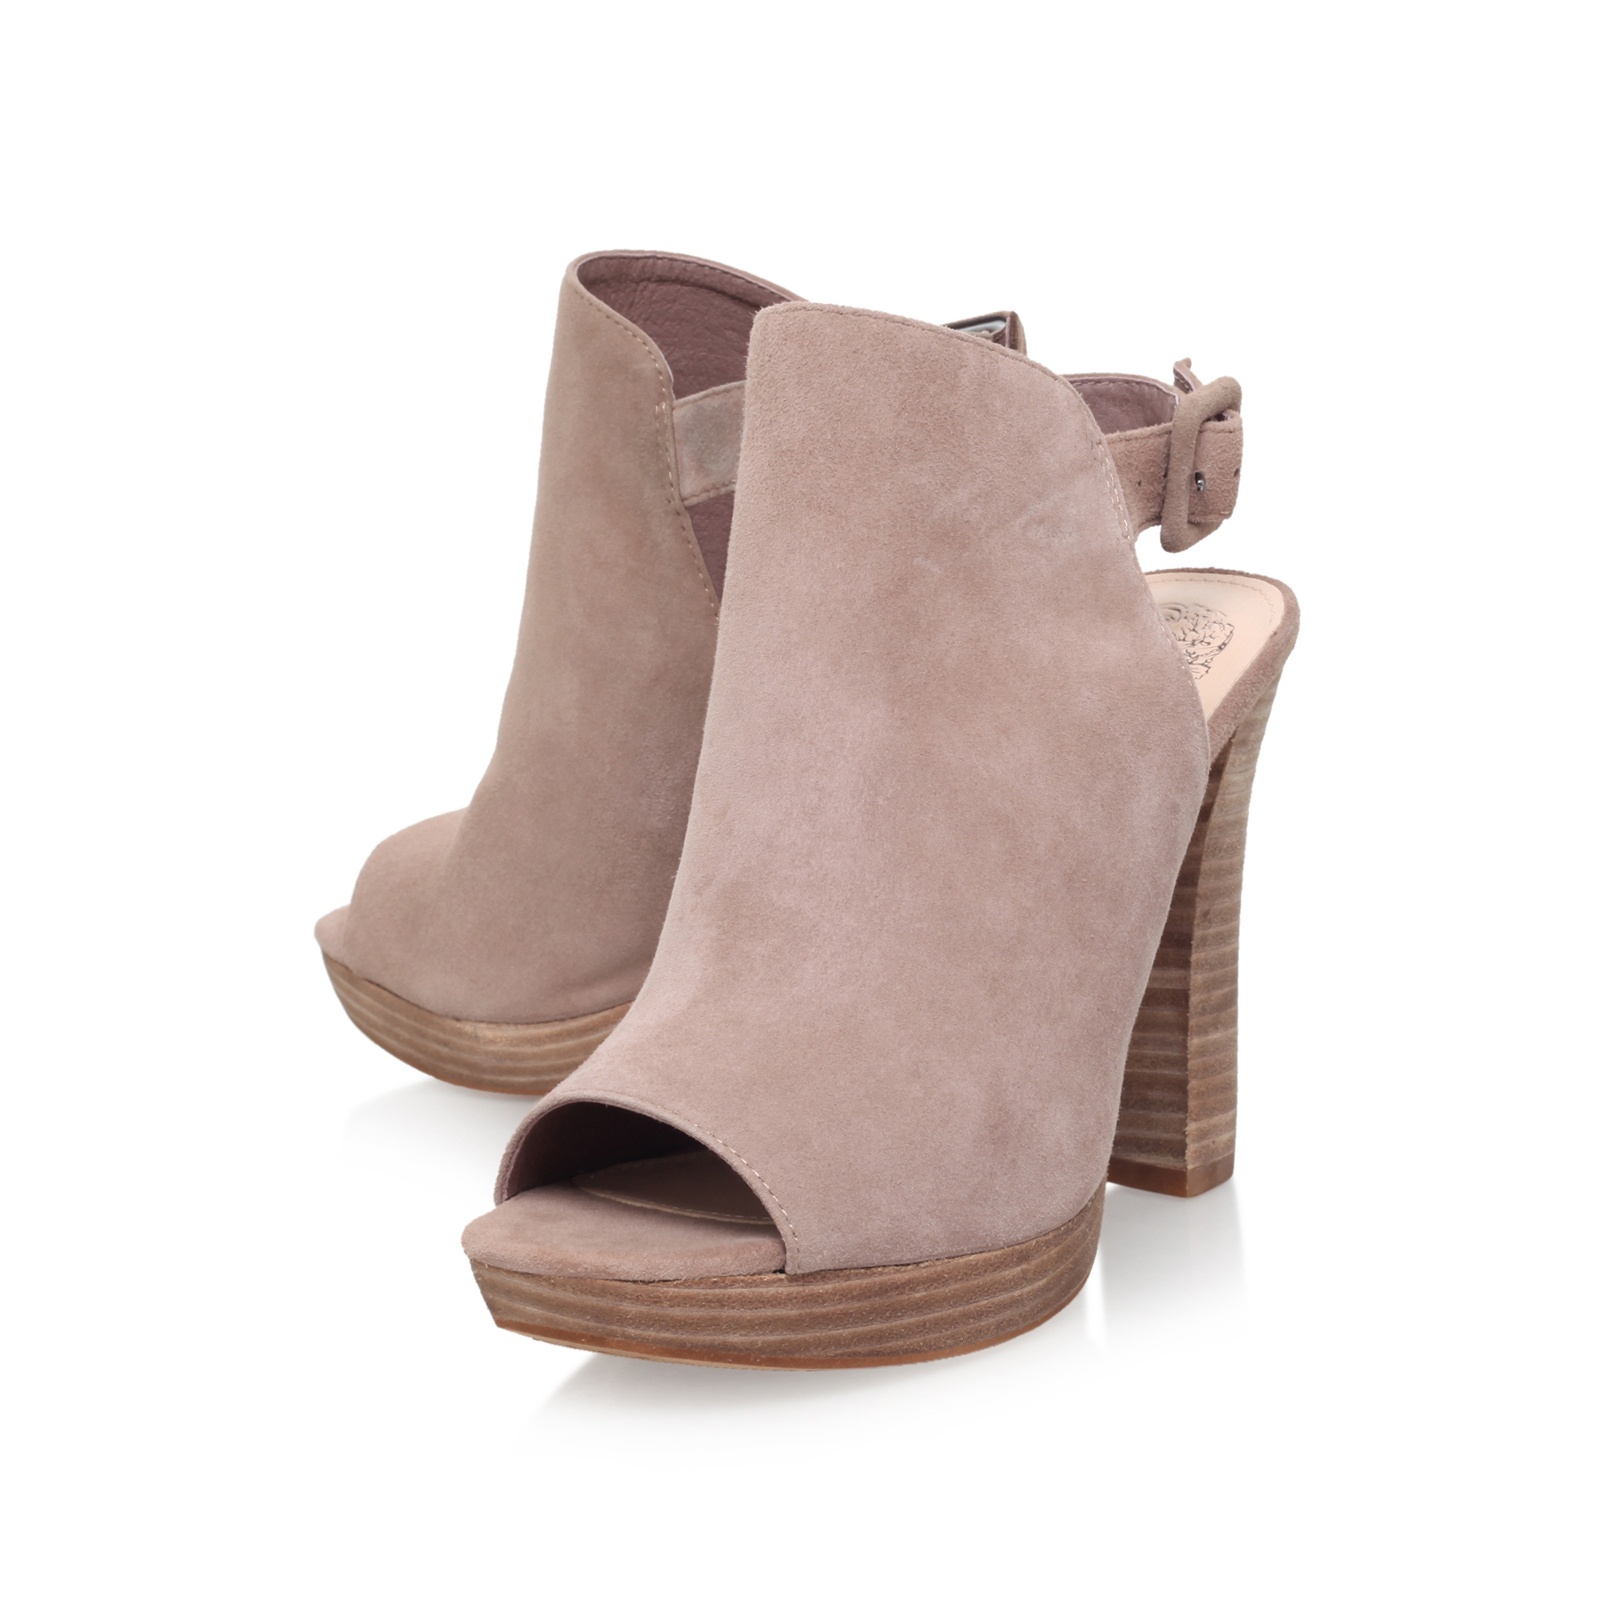 GILSA Vince Camuto Gilsa Taupe Leather High Heels Block Heel by VINCE CAMUTO